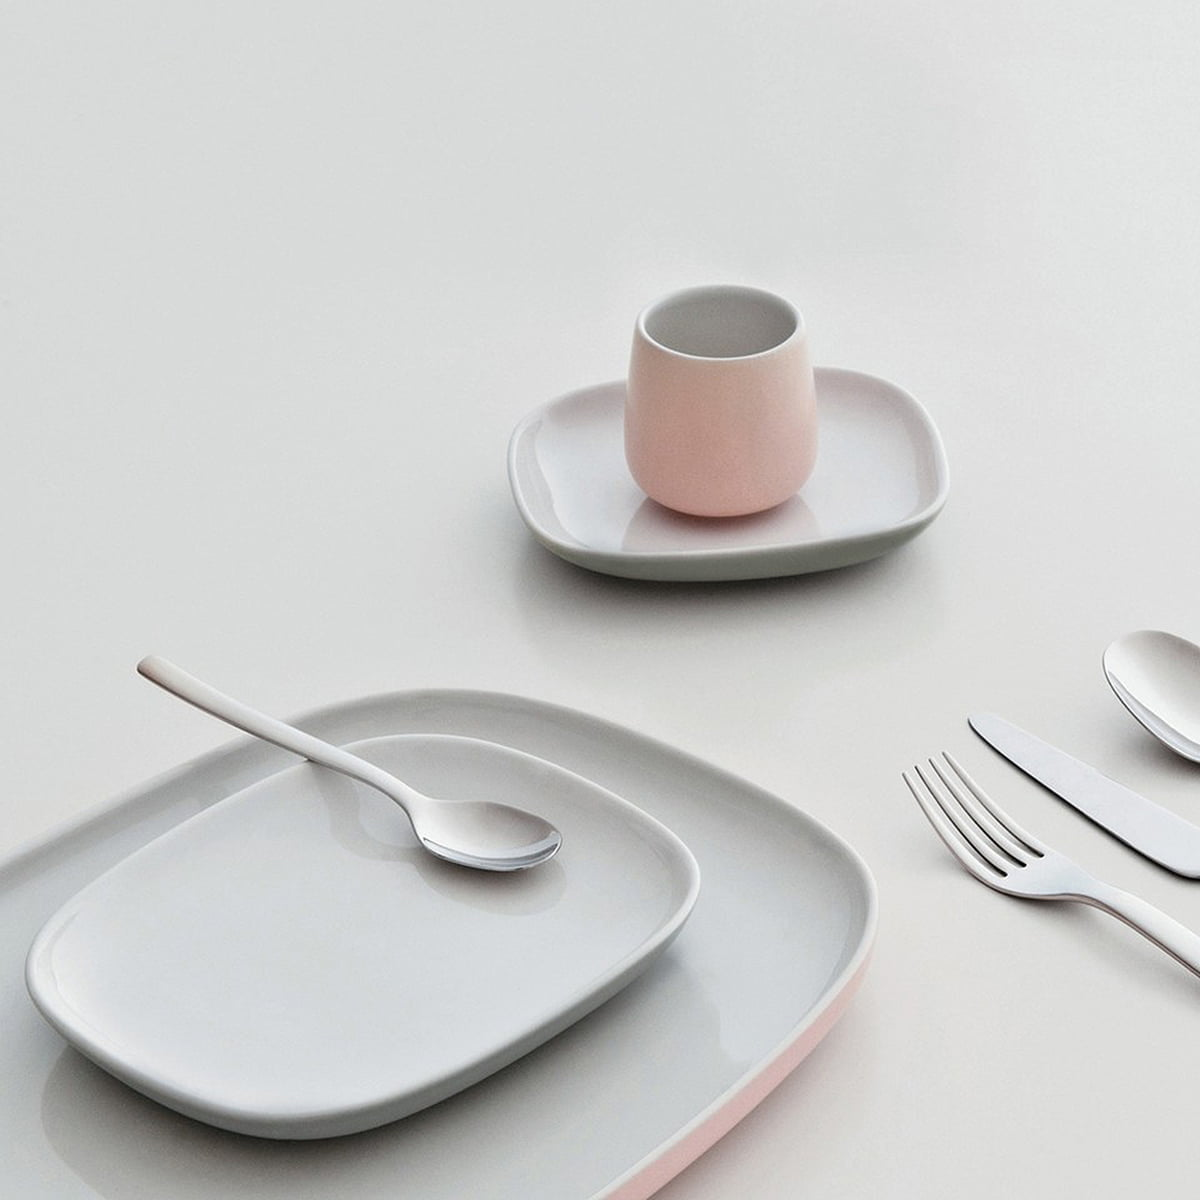 Ovale Tableware Collection with Cutlery & Ovale Dinner Plate by Alessi in the shop